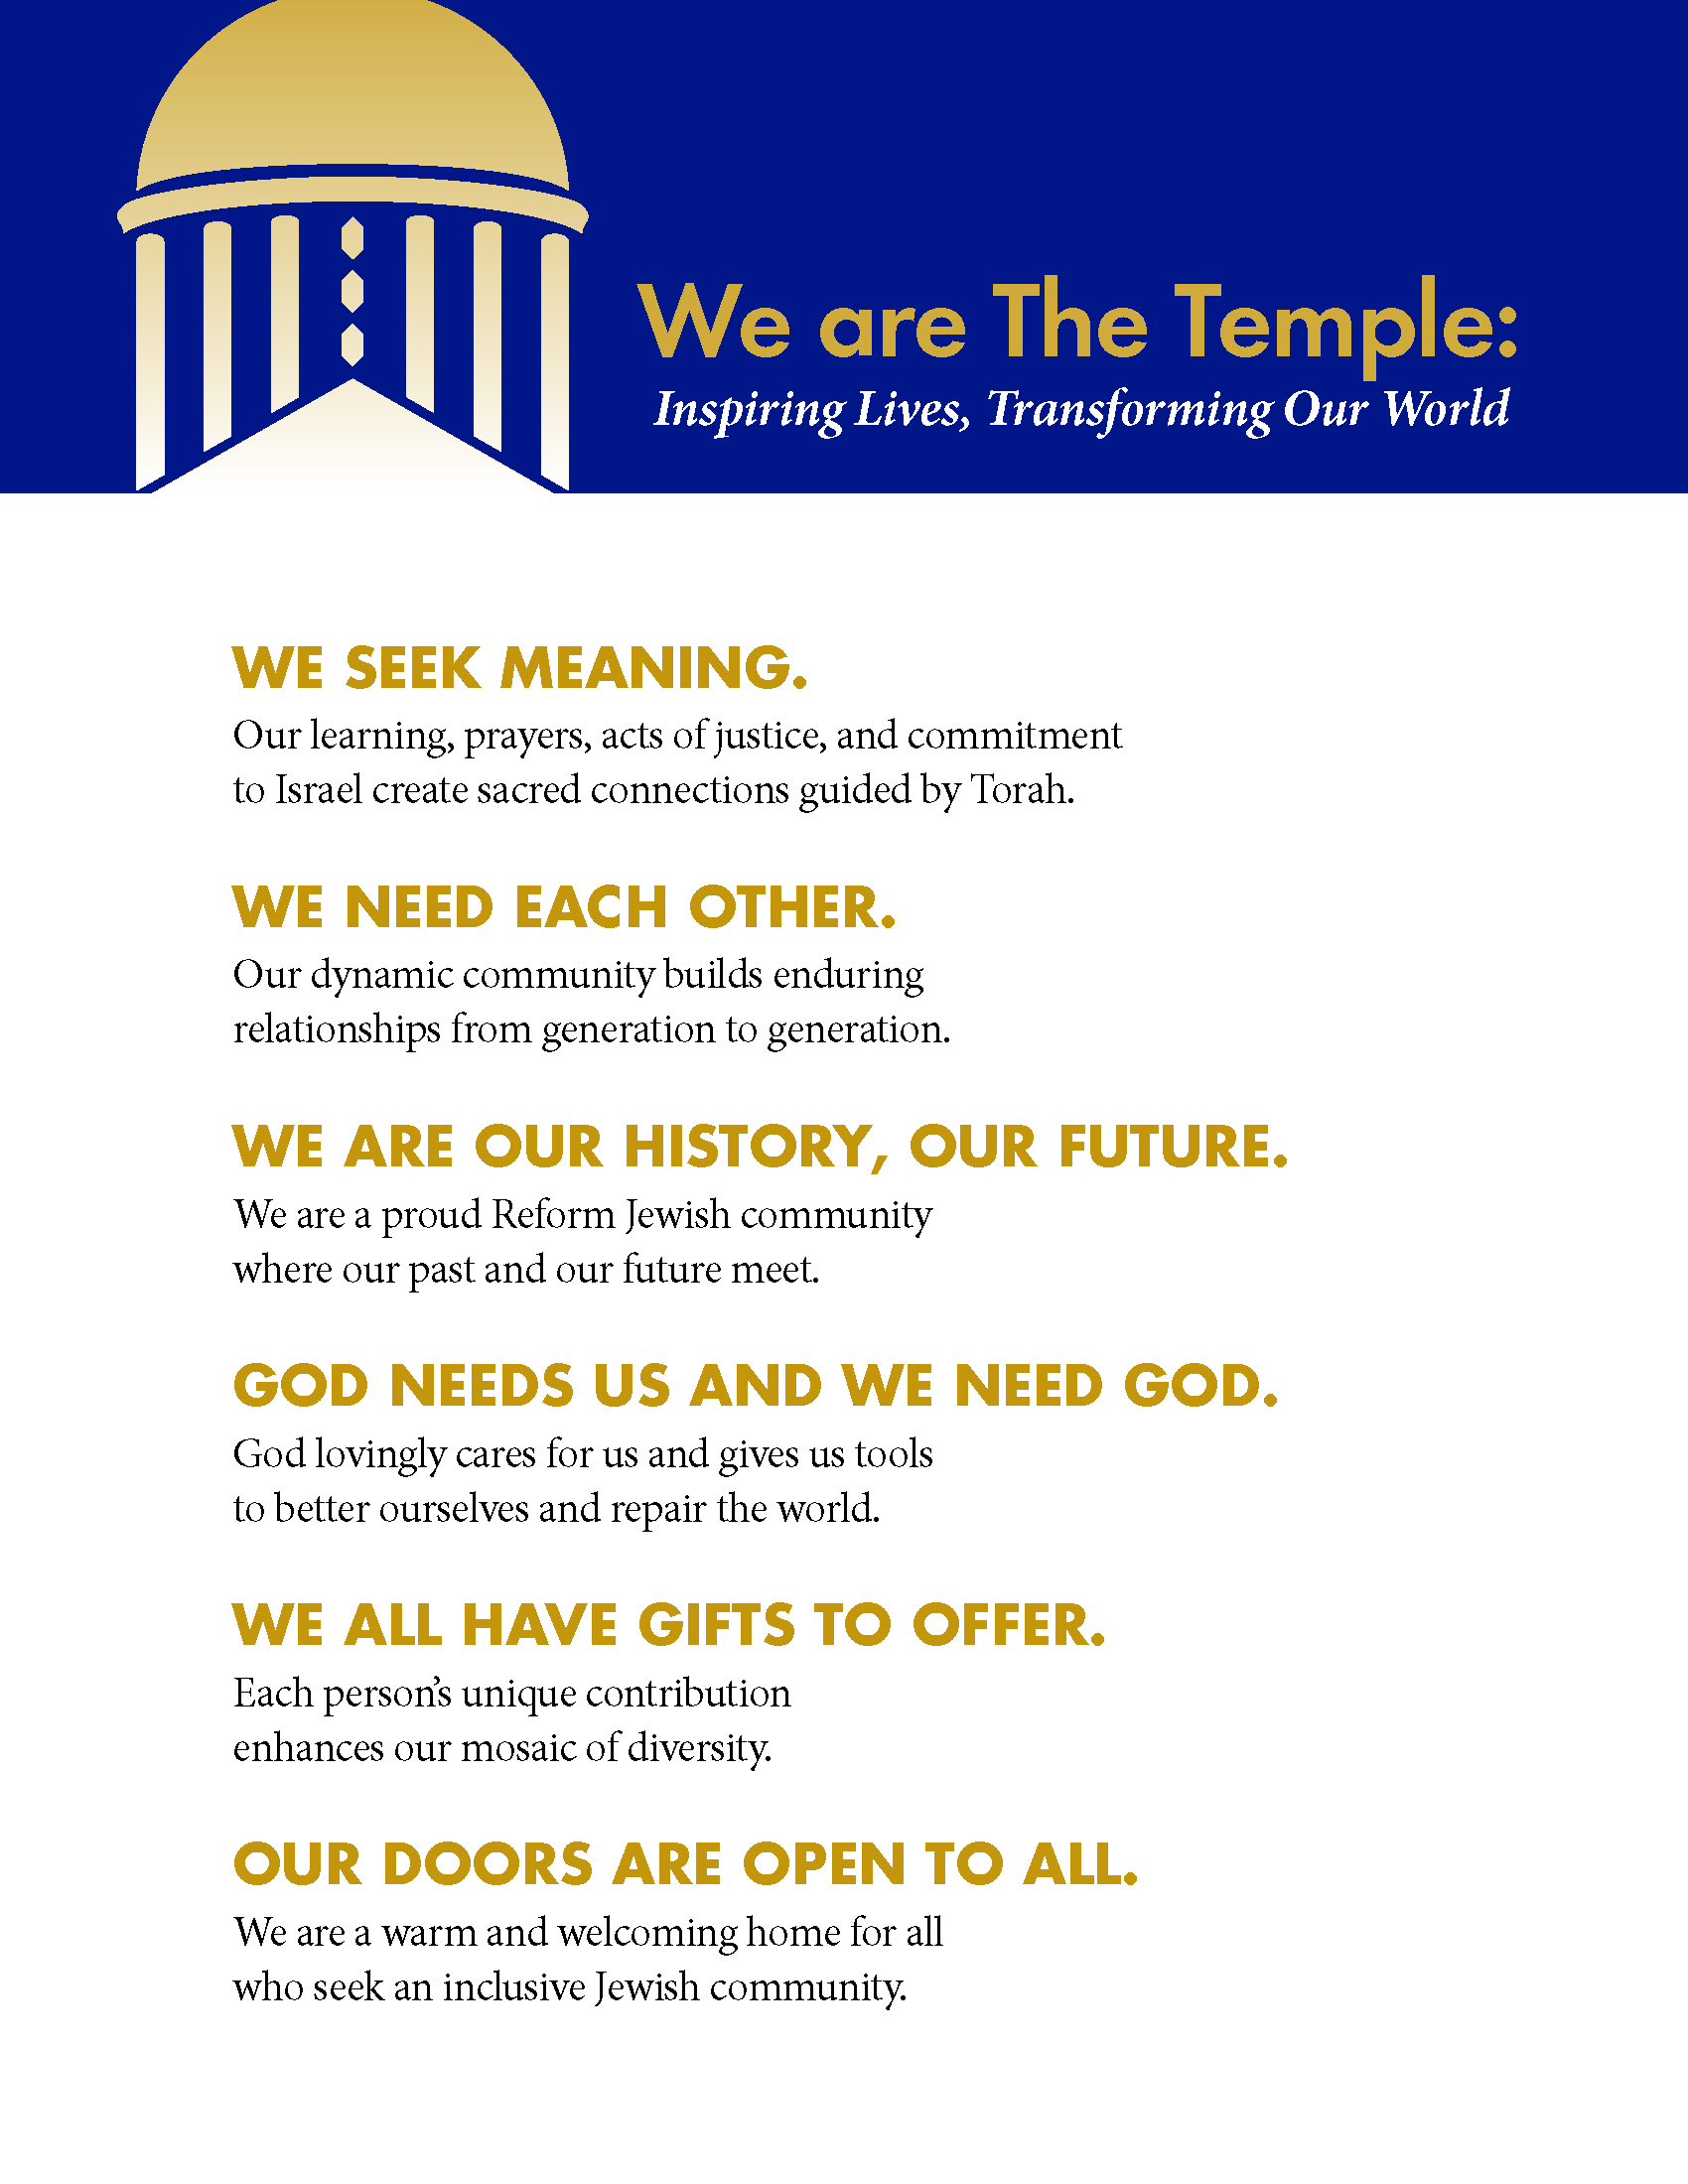 Vision & Values - The Temple